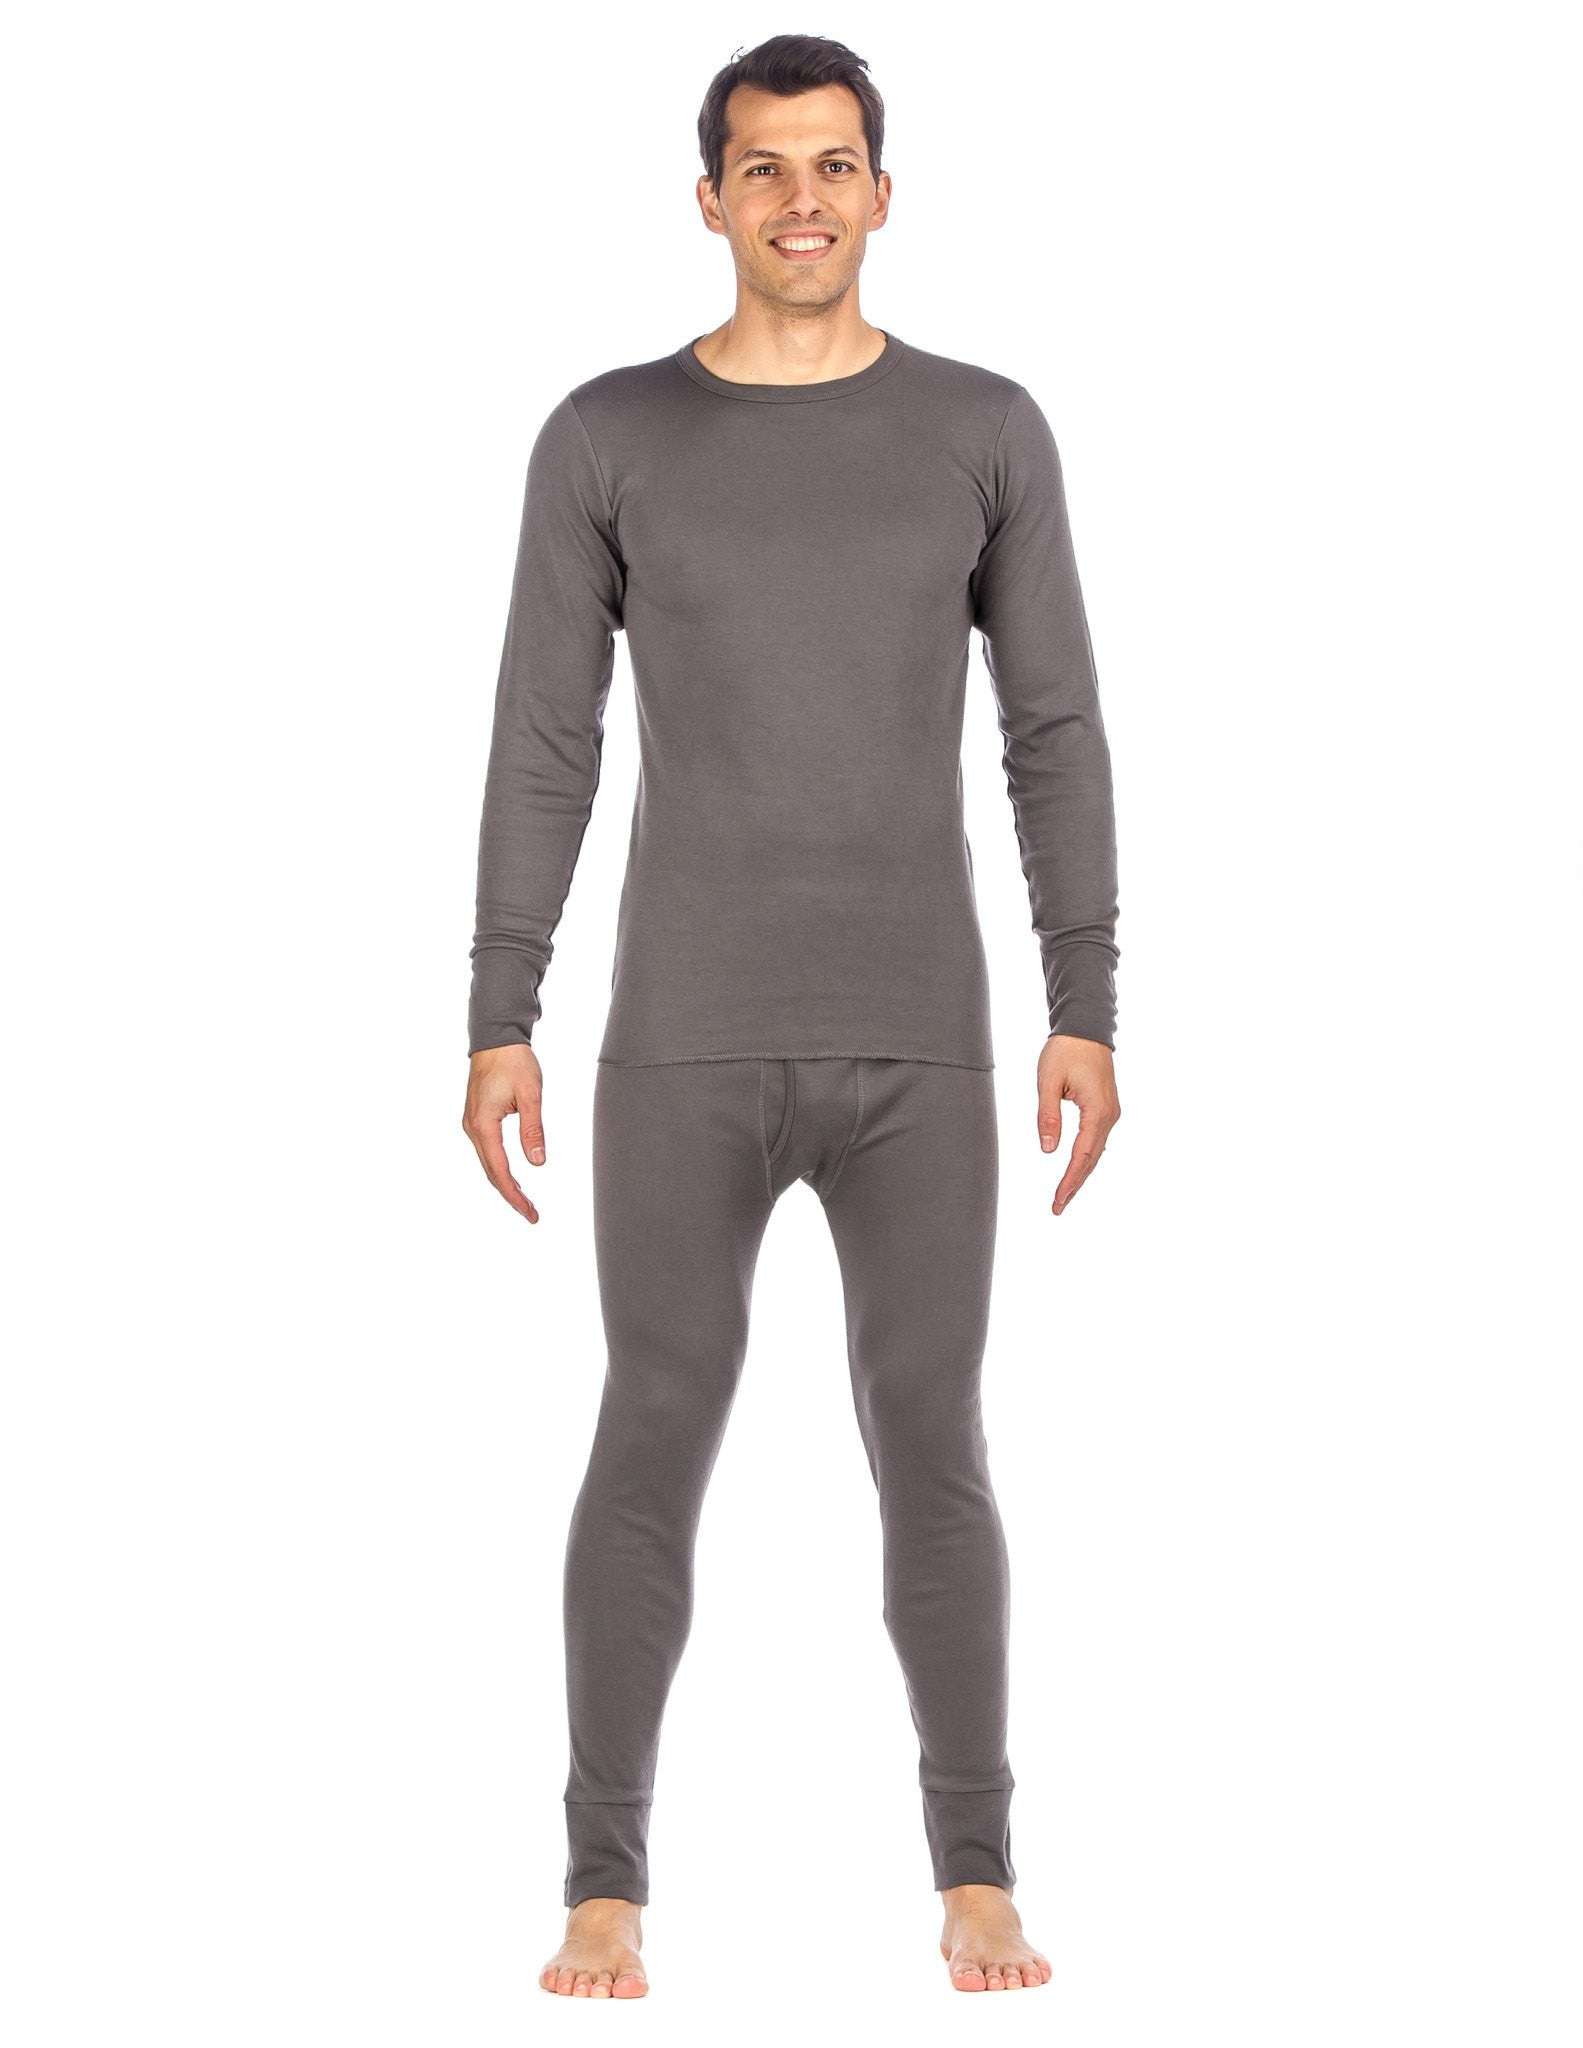 Men's 'Soft Comfort' Premium Thermal Set